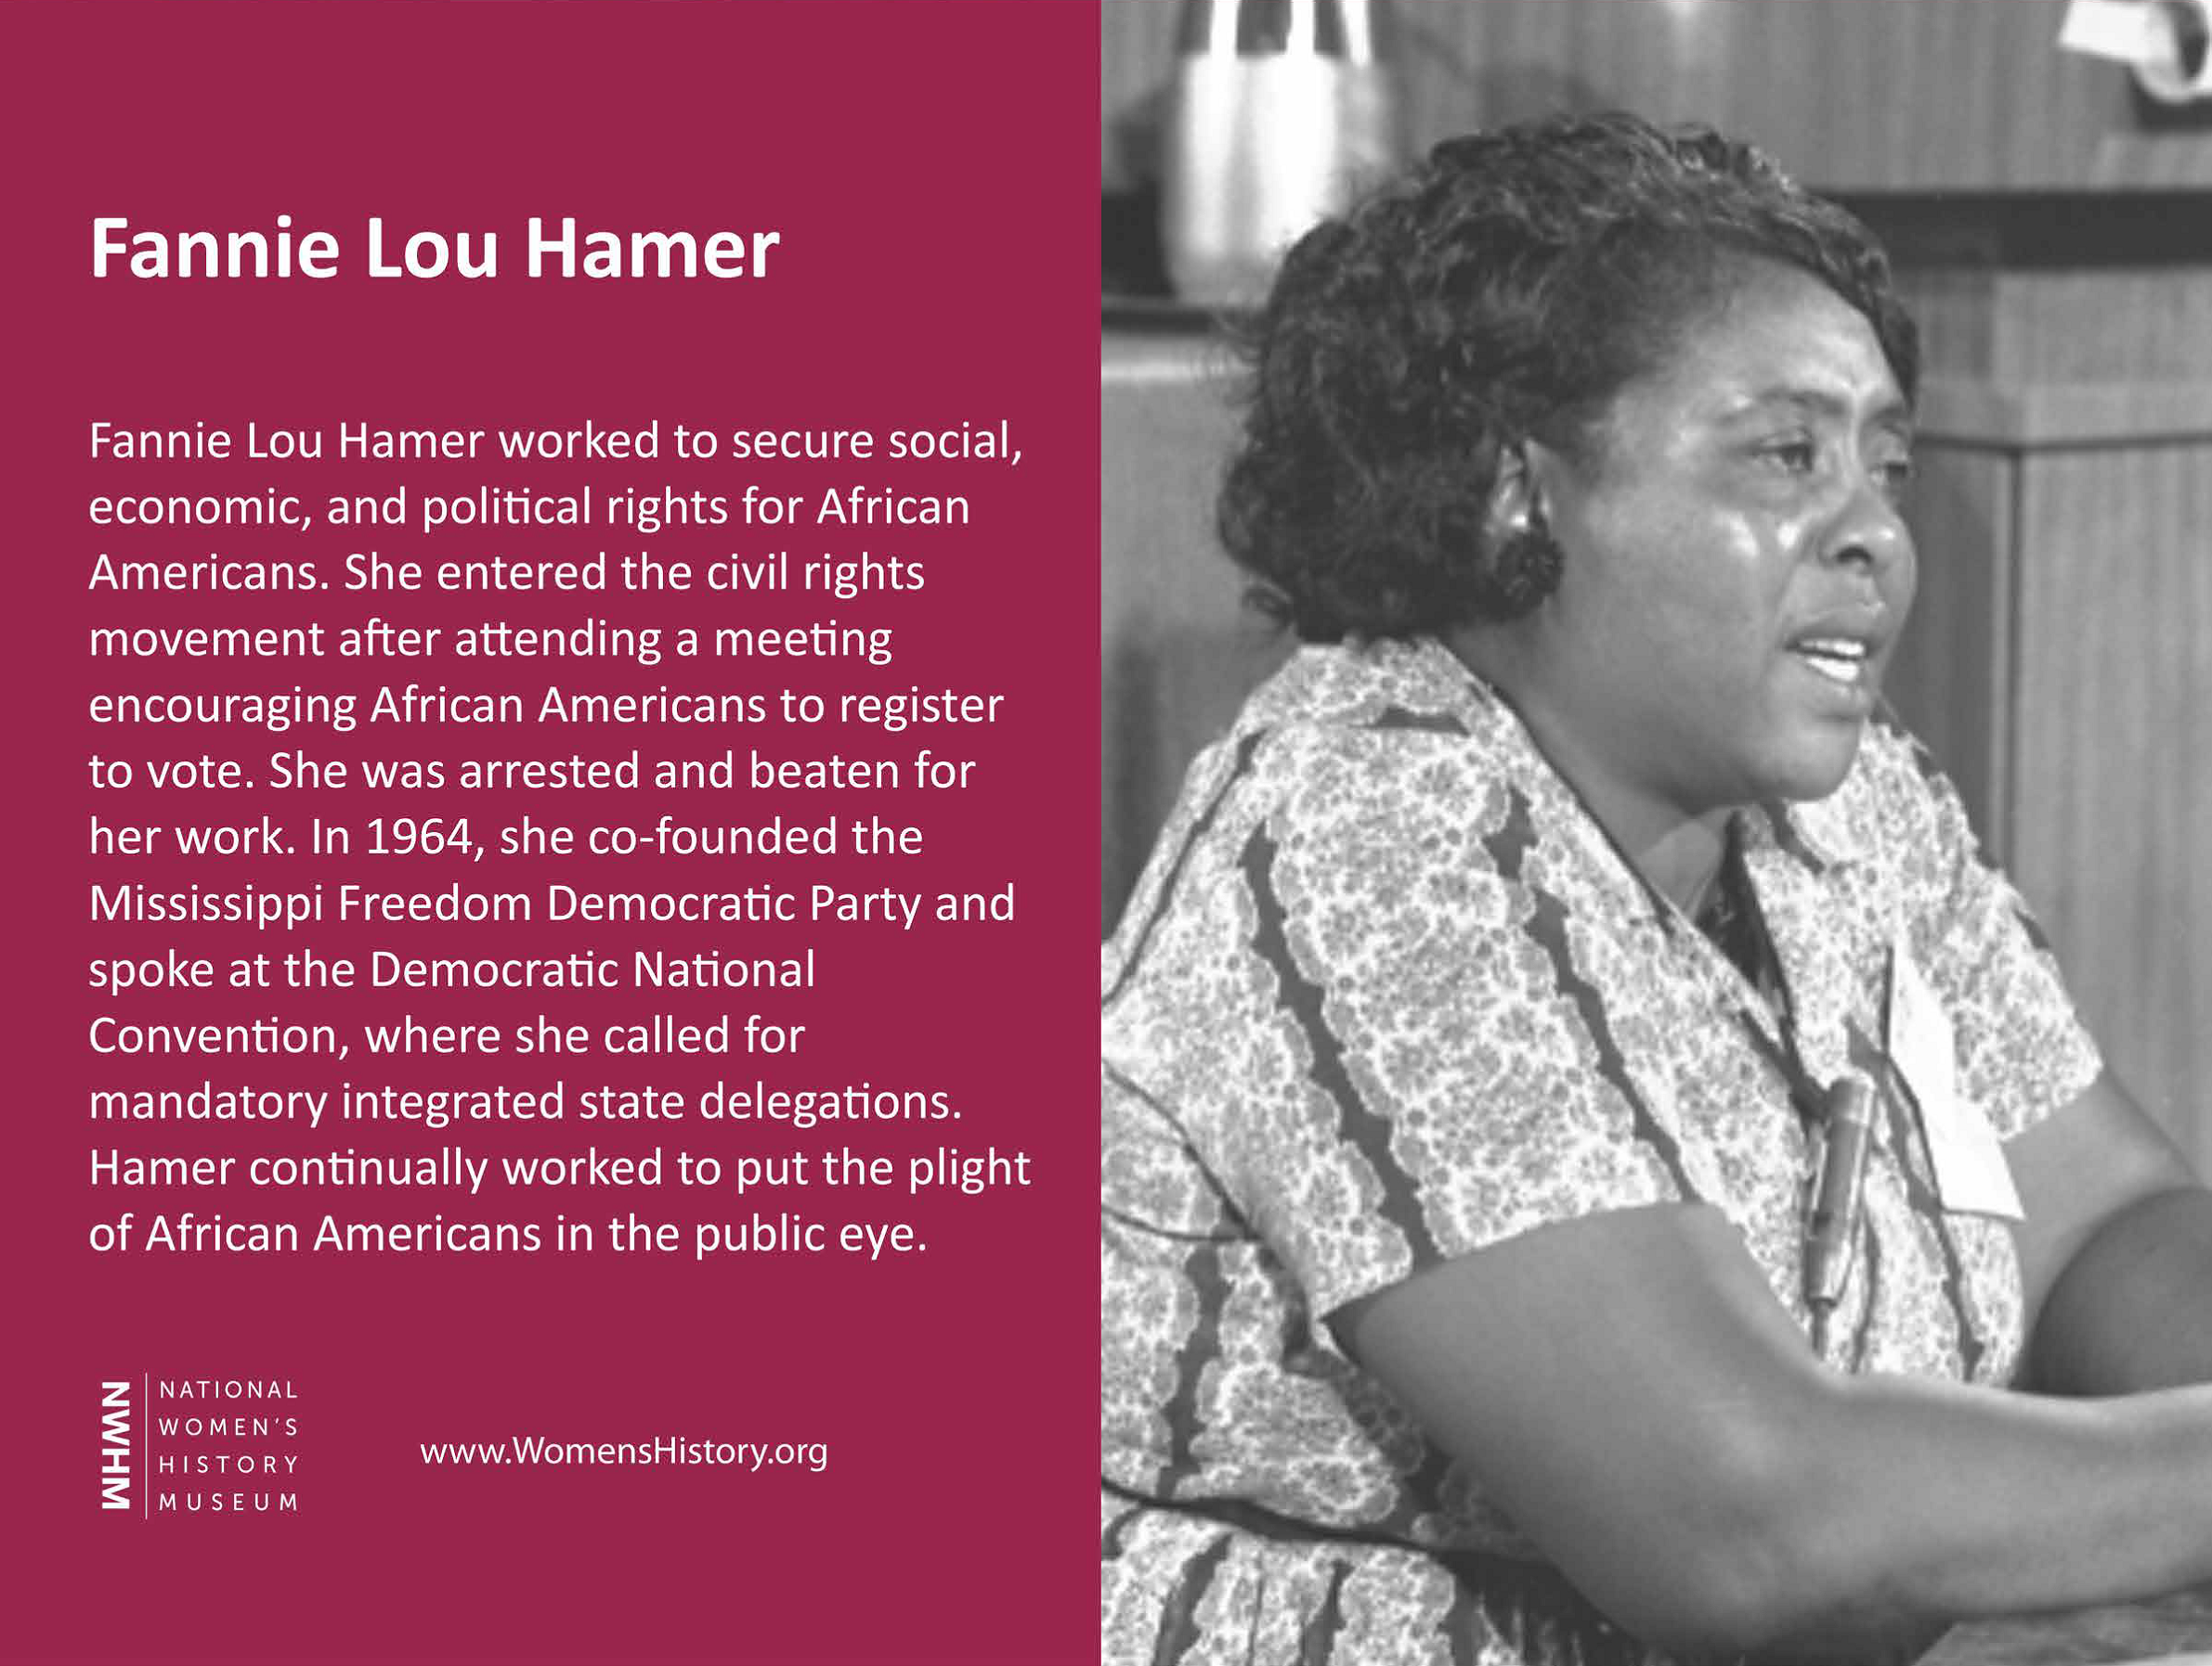 Fannie Lou Hamer worked to secure social, economic, and political rights for African Americans. She entered the civil rights movement after attending a meeting encouraging African Americans to register to vote. She was arrested and beaten for her work. In 1964, she co-founded the Mississippi Freedom Democratic Party and spoke at the National Convention, where she called for mandatory integrated state delegations. Hamer continually worked to put the plight of African Americans in the public eye.